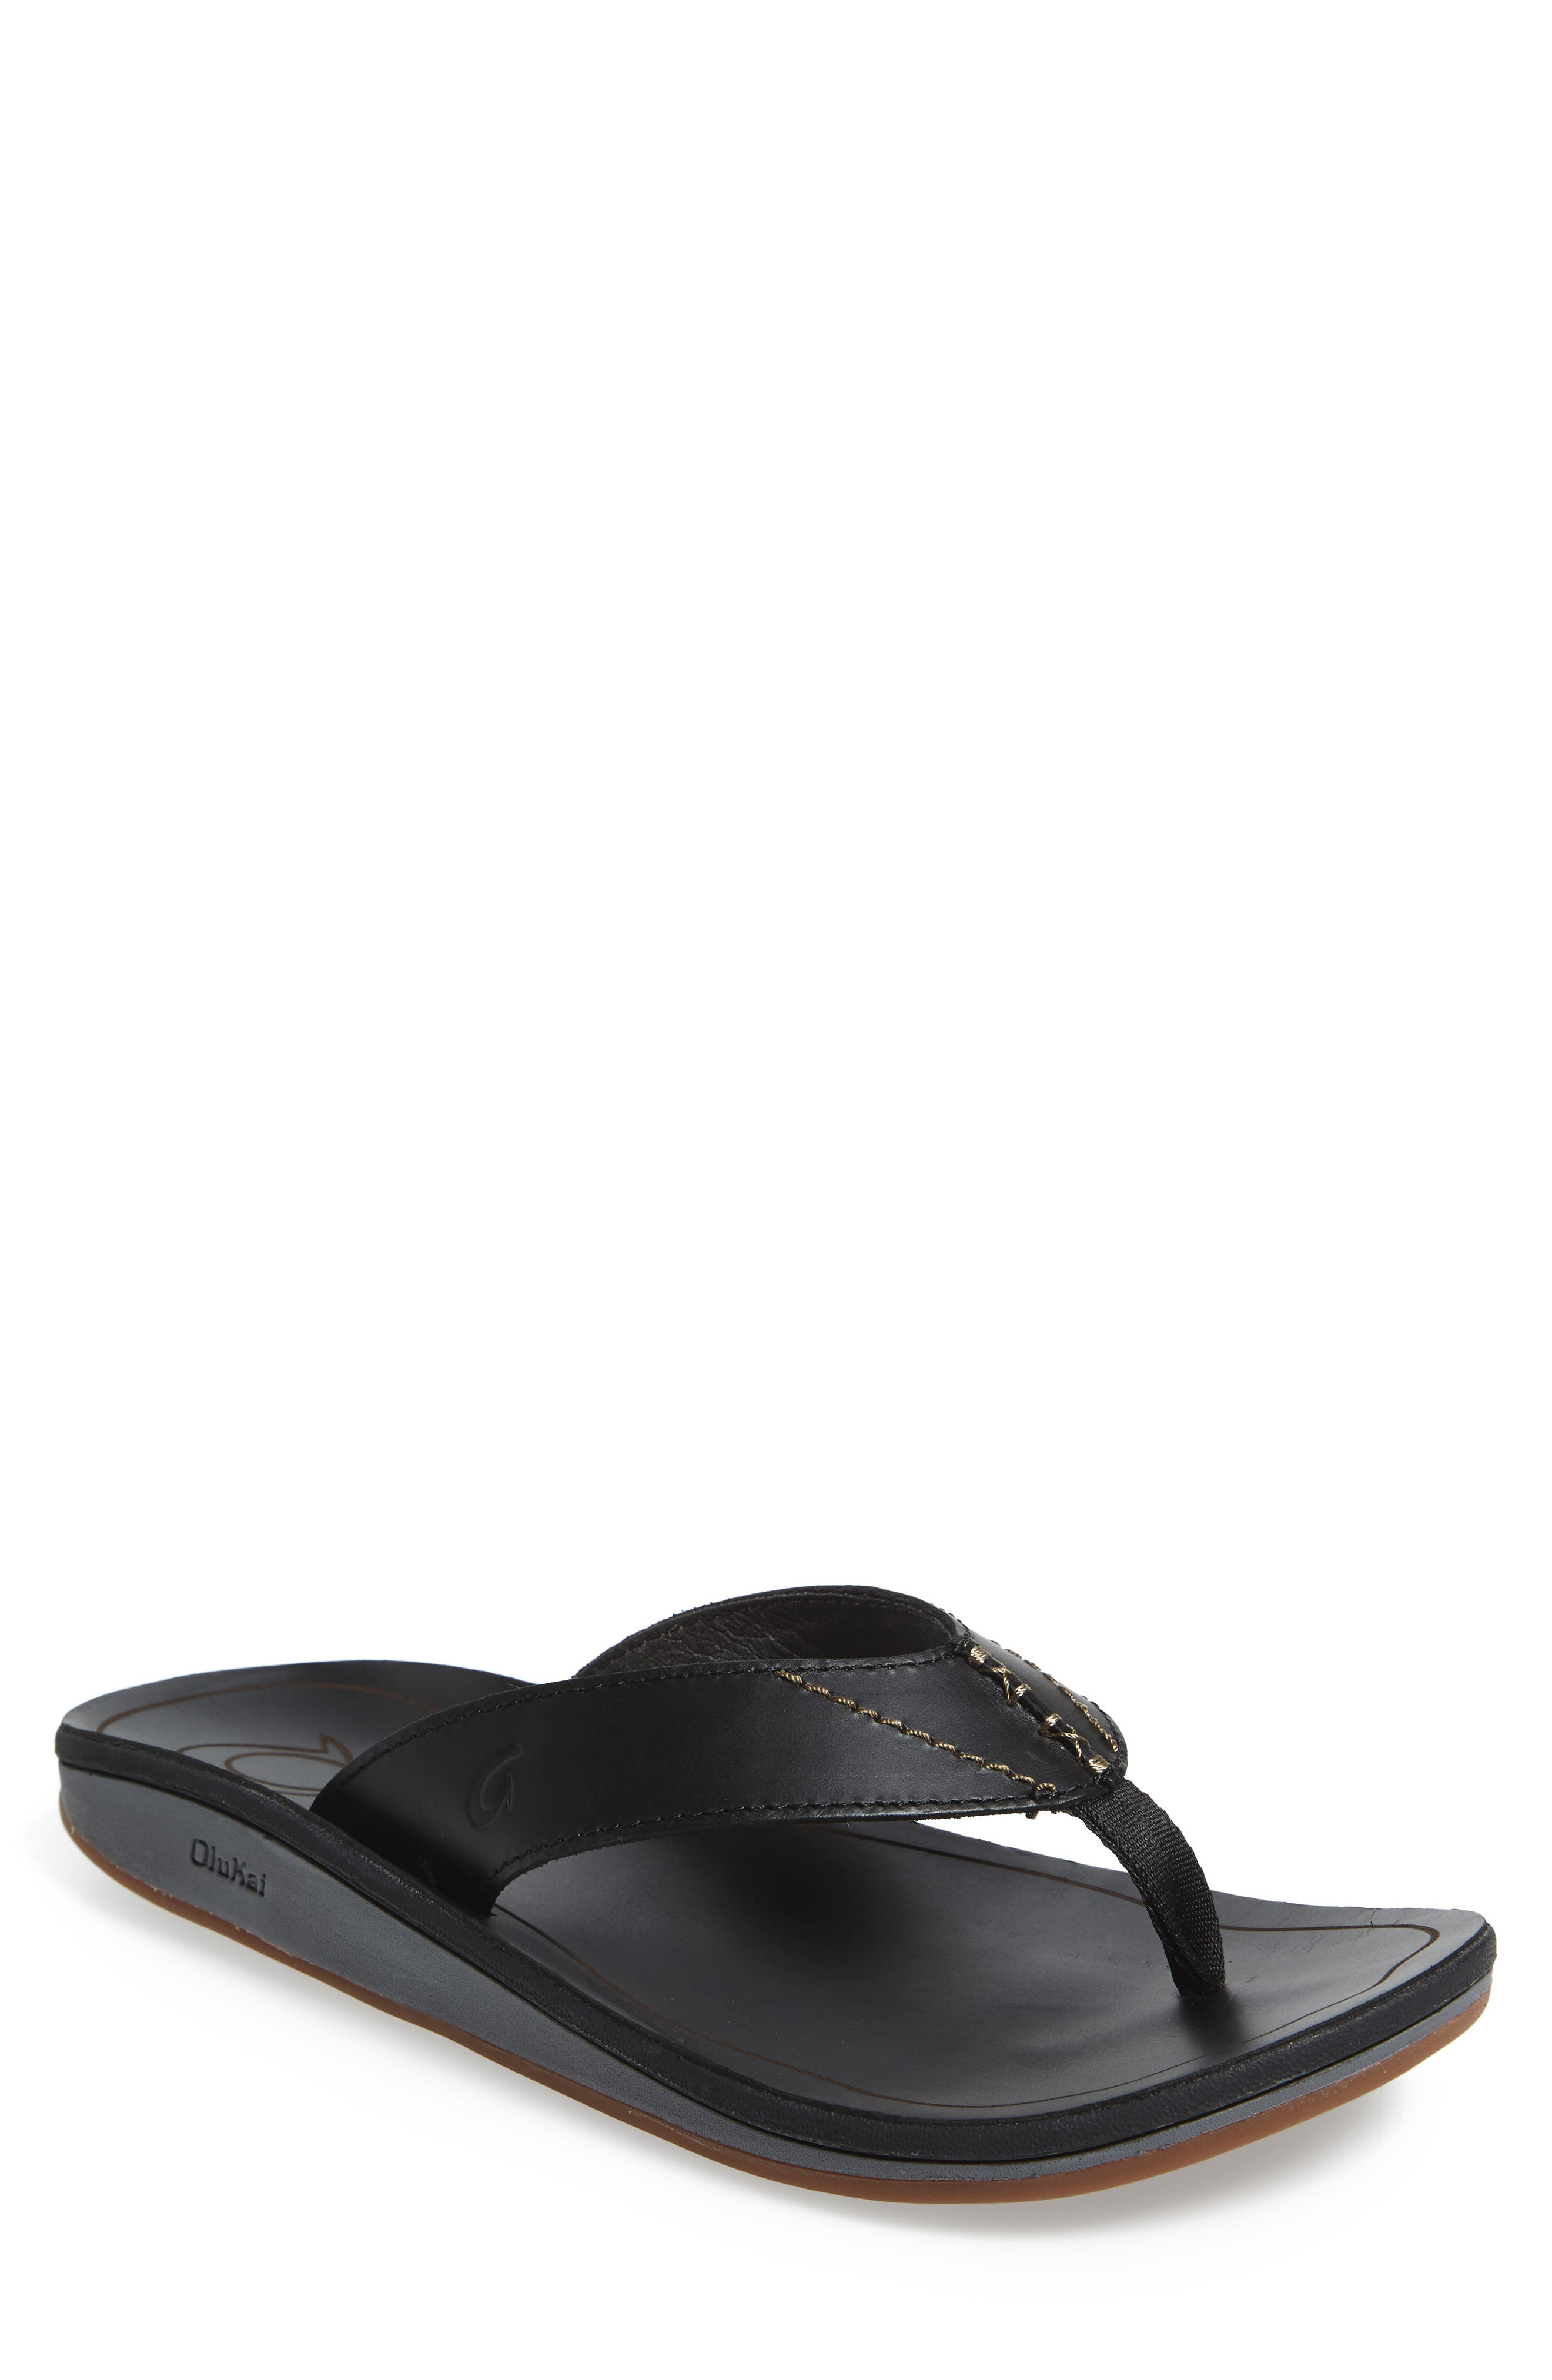 Nohona Ili Flip Flop,                         Main,                         color, BLACK/ BLACK LEATHER